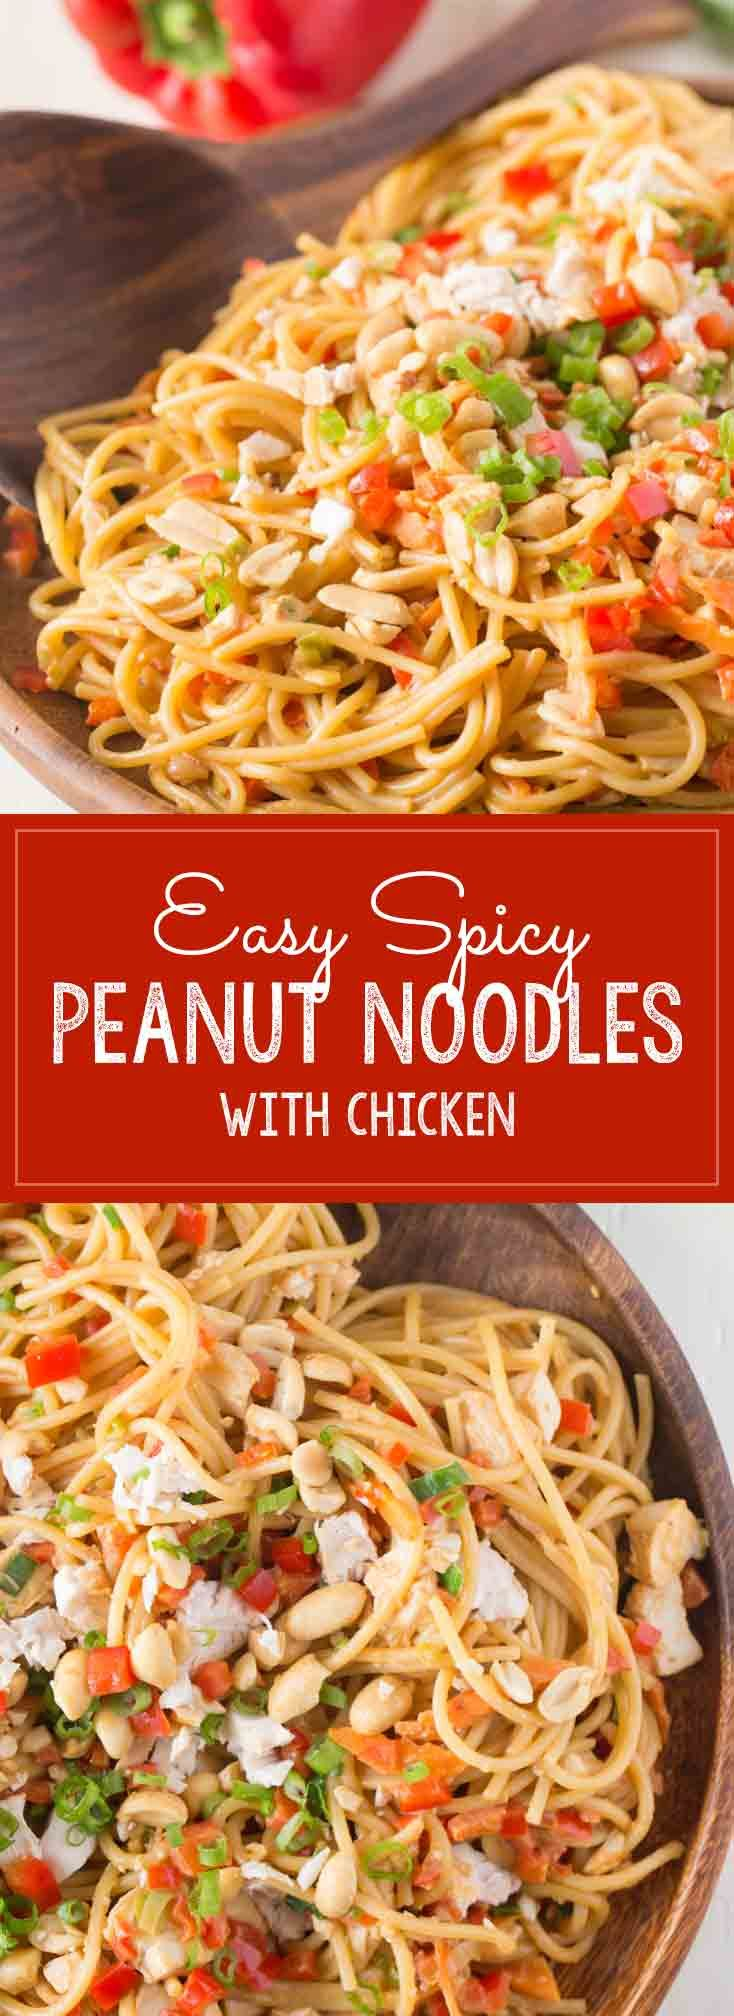 Some pantry staples, a few fresh veggies and the help of a rotisserie chicken make this quick and easy dinner a huge hit!